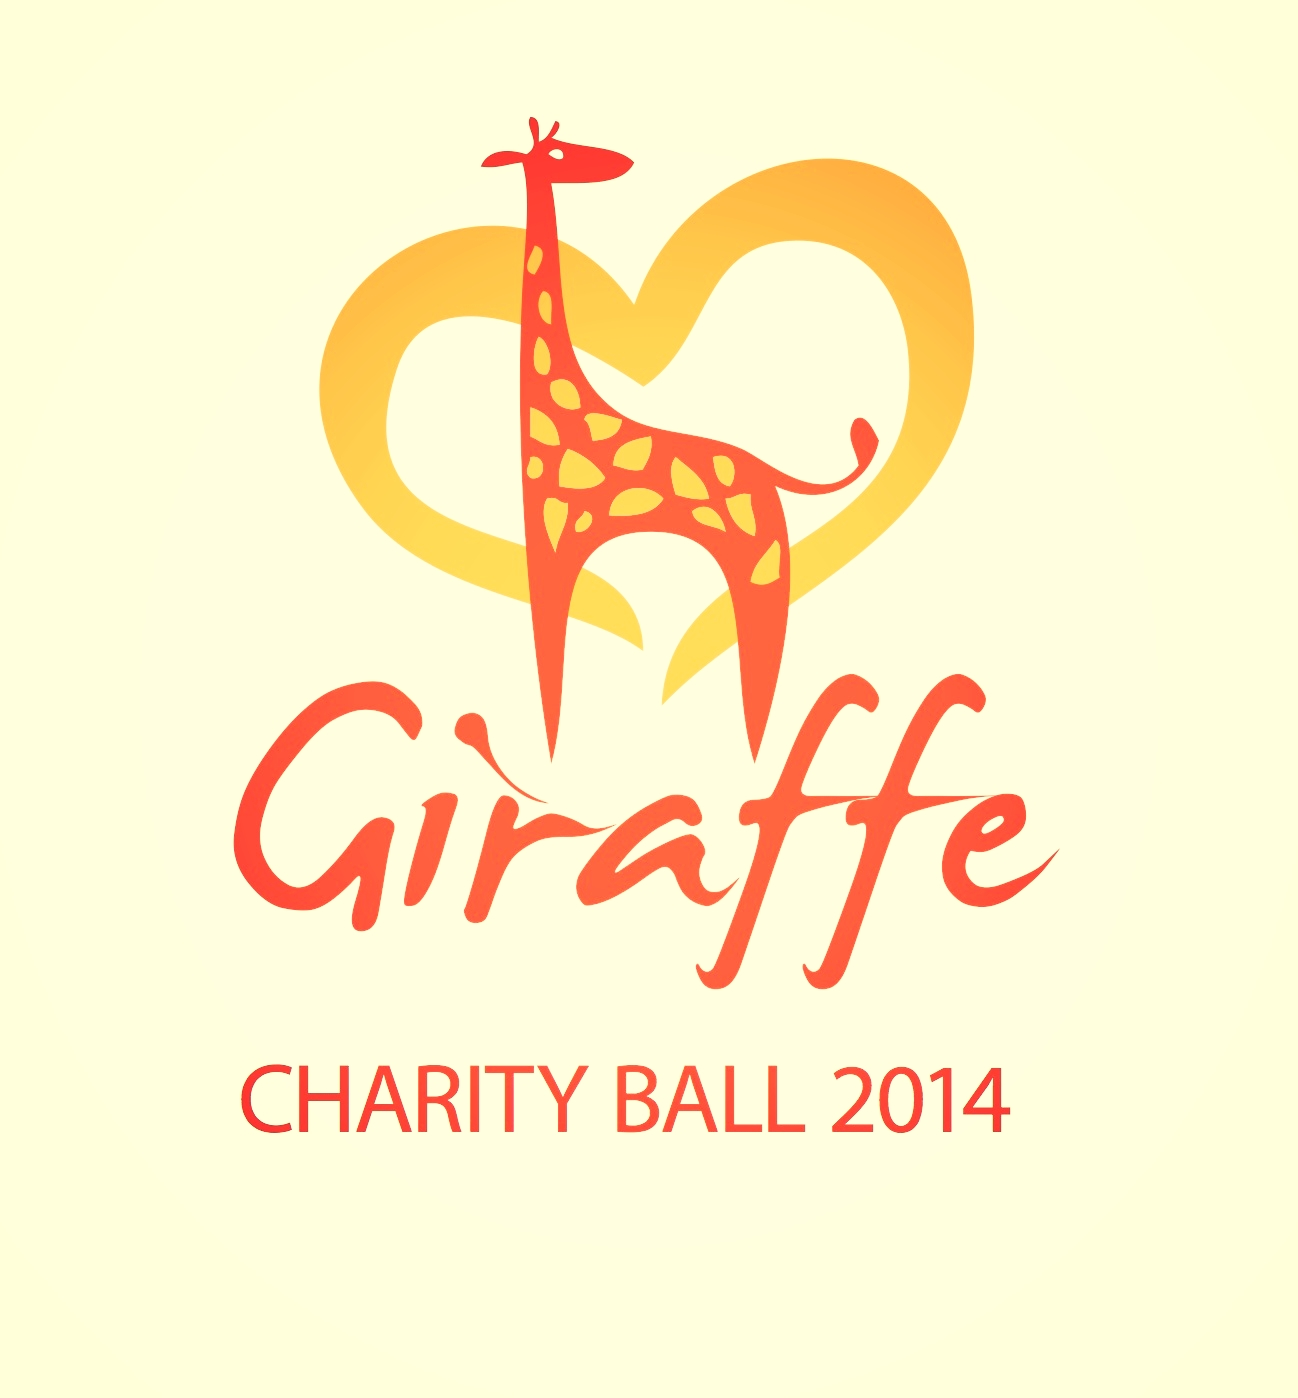 Giraffe Charity Ball